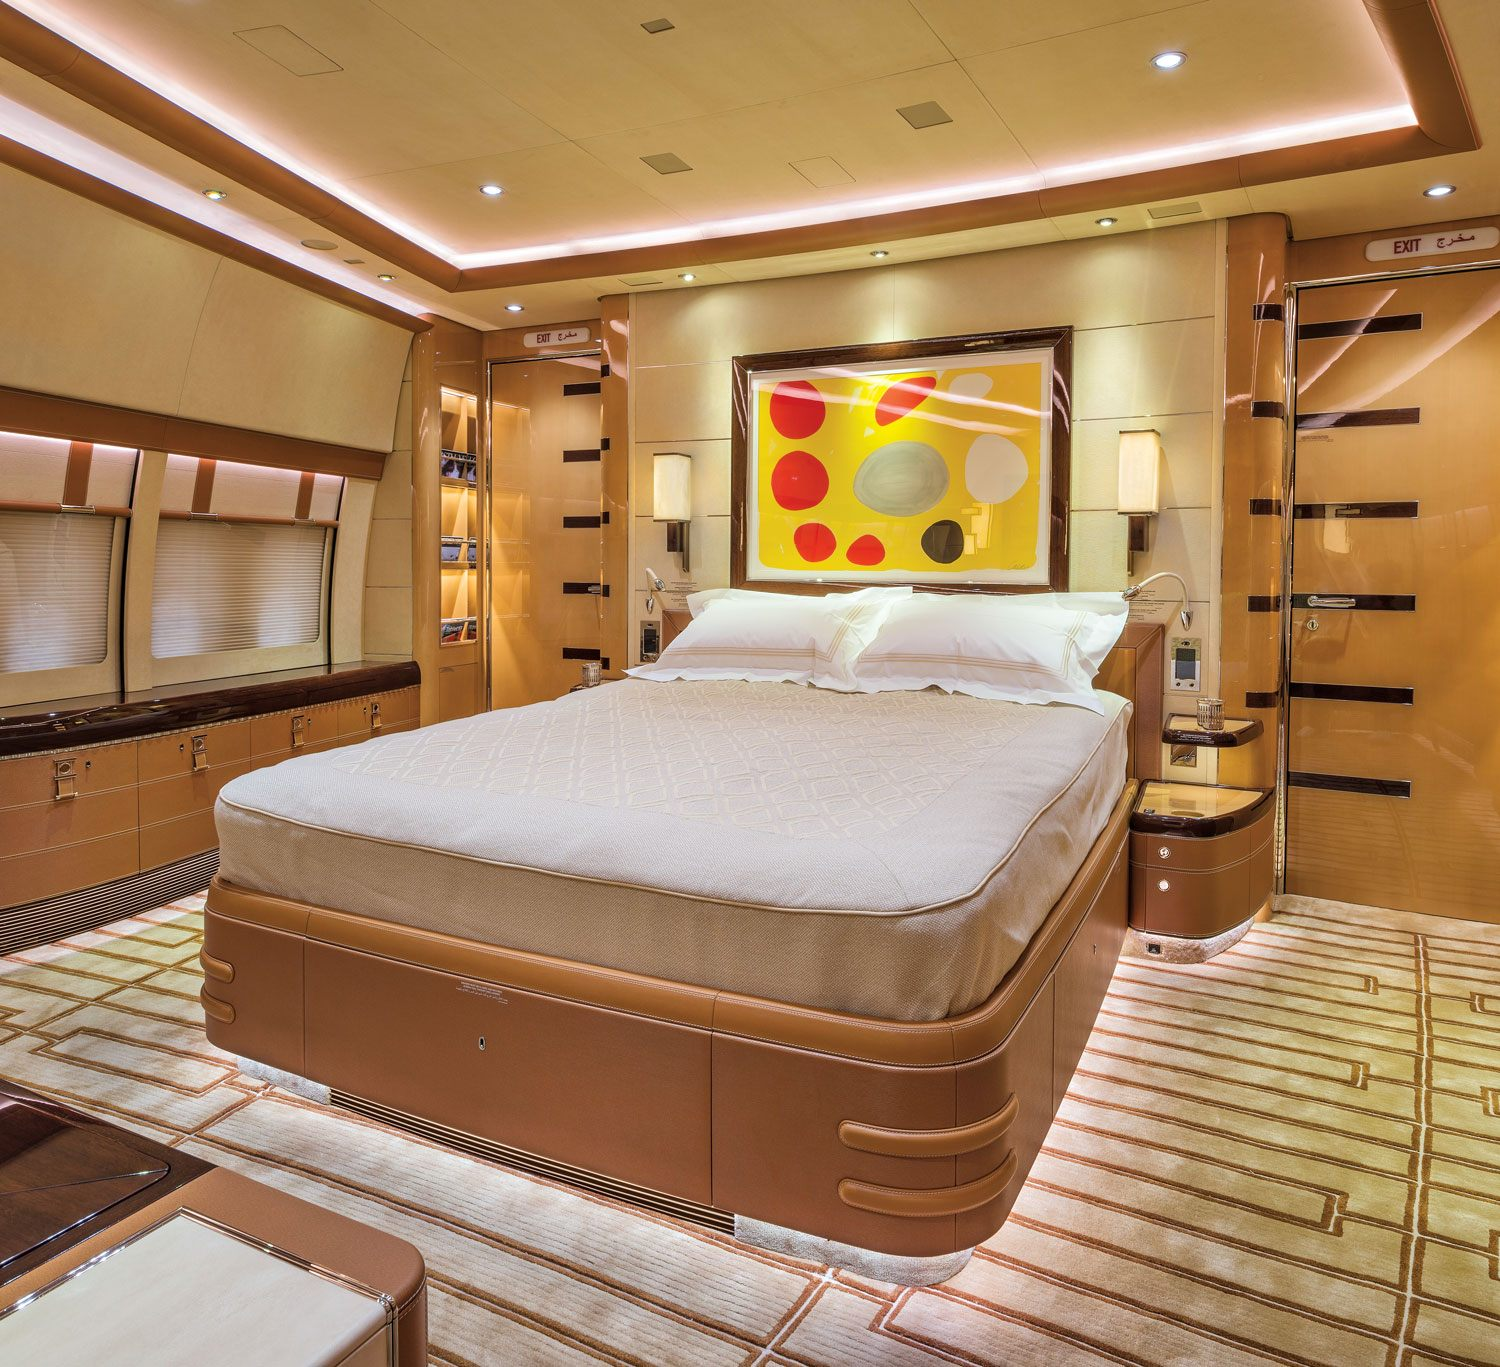 In the master bedroom of the private Boeing 747-8, an etching by Alexander Calder hangs above an Alberto Pinto-designed embossed leather bed with a saddle-stitch detail.